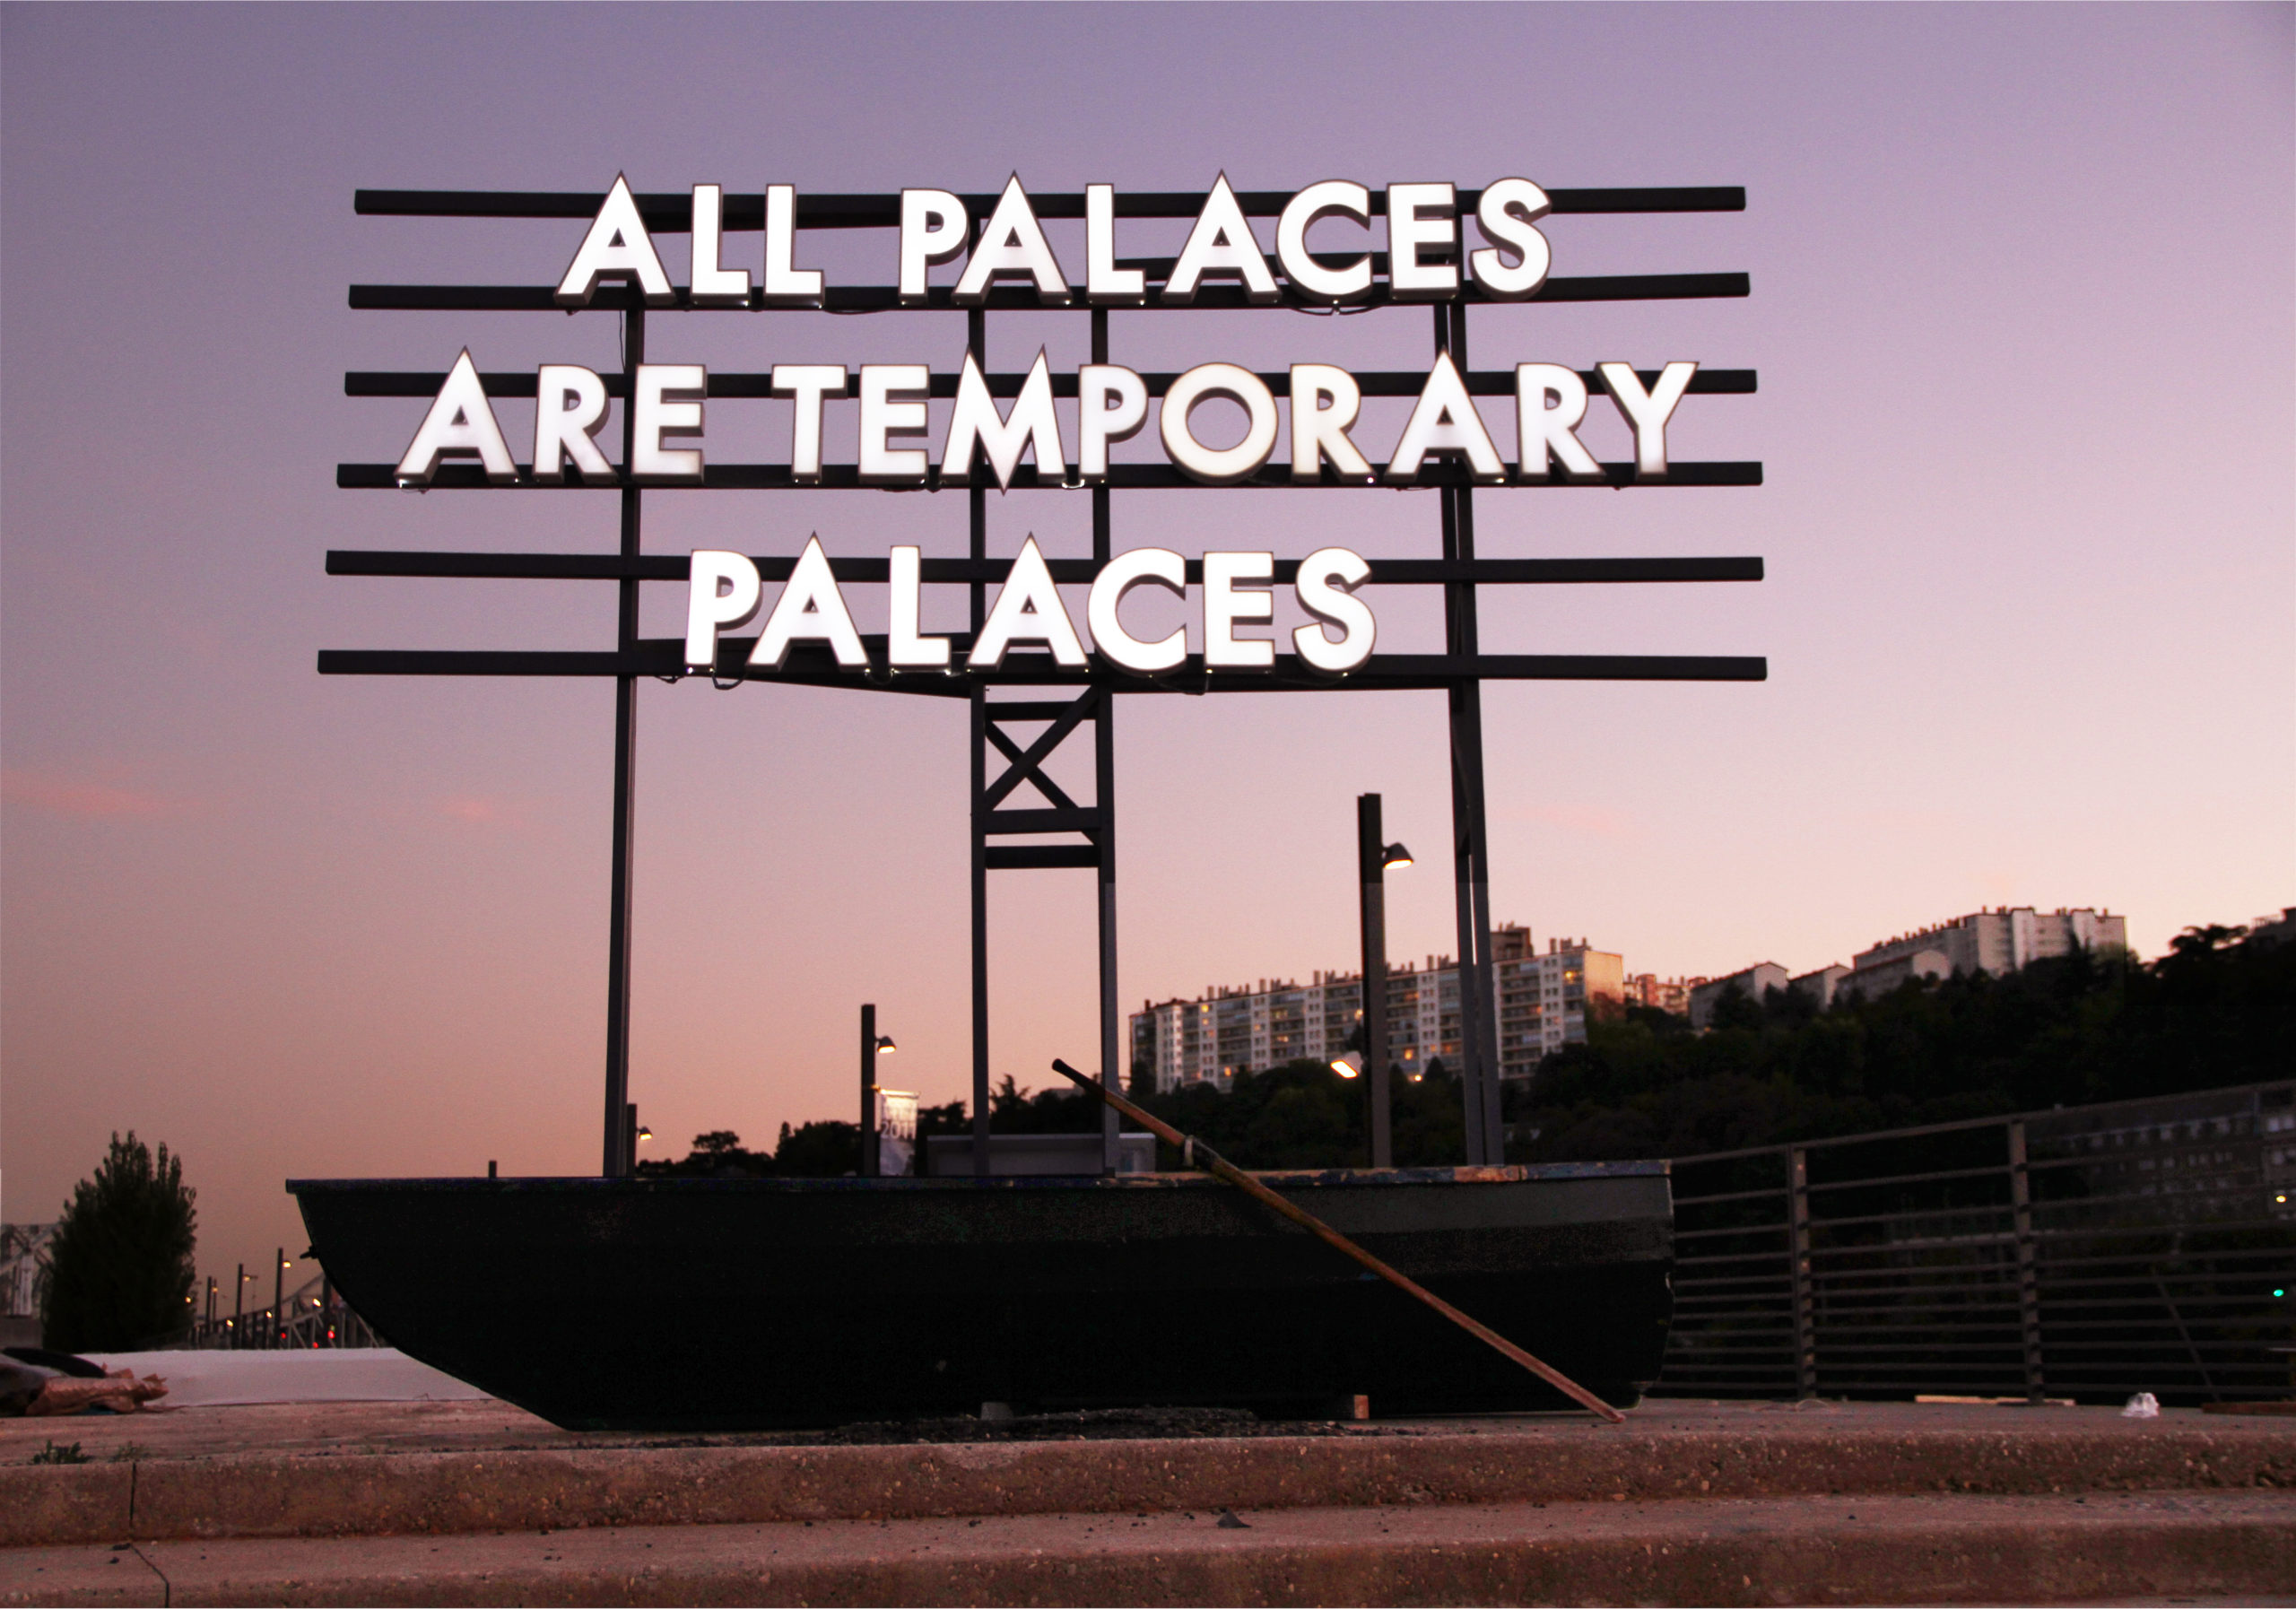 ___Analix forever-ROBERT MONTGOMERY-All palaces are temporary palaces – colour corrected and scaled to 150 x 215 Michael Cohen print-OEUVRES LUMINEUSES, LED, DIMENSIONS VARIABLES-2011-© ROBERT MONTGOMERY